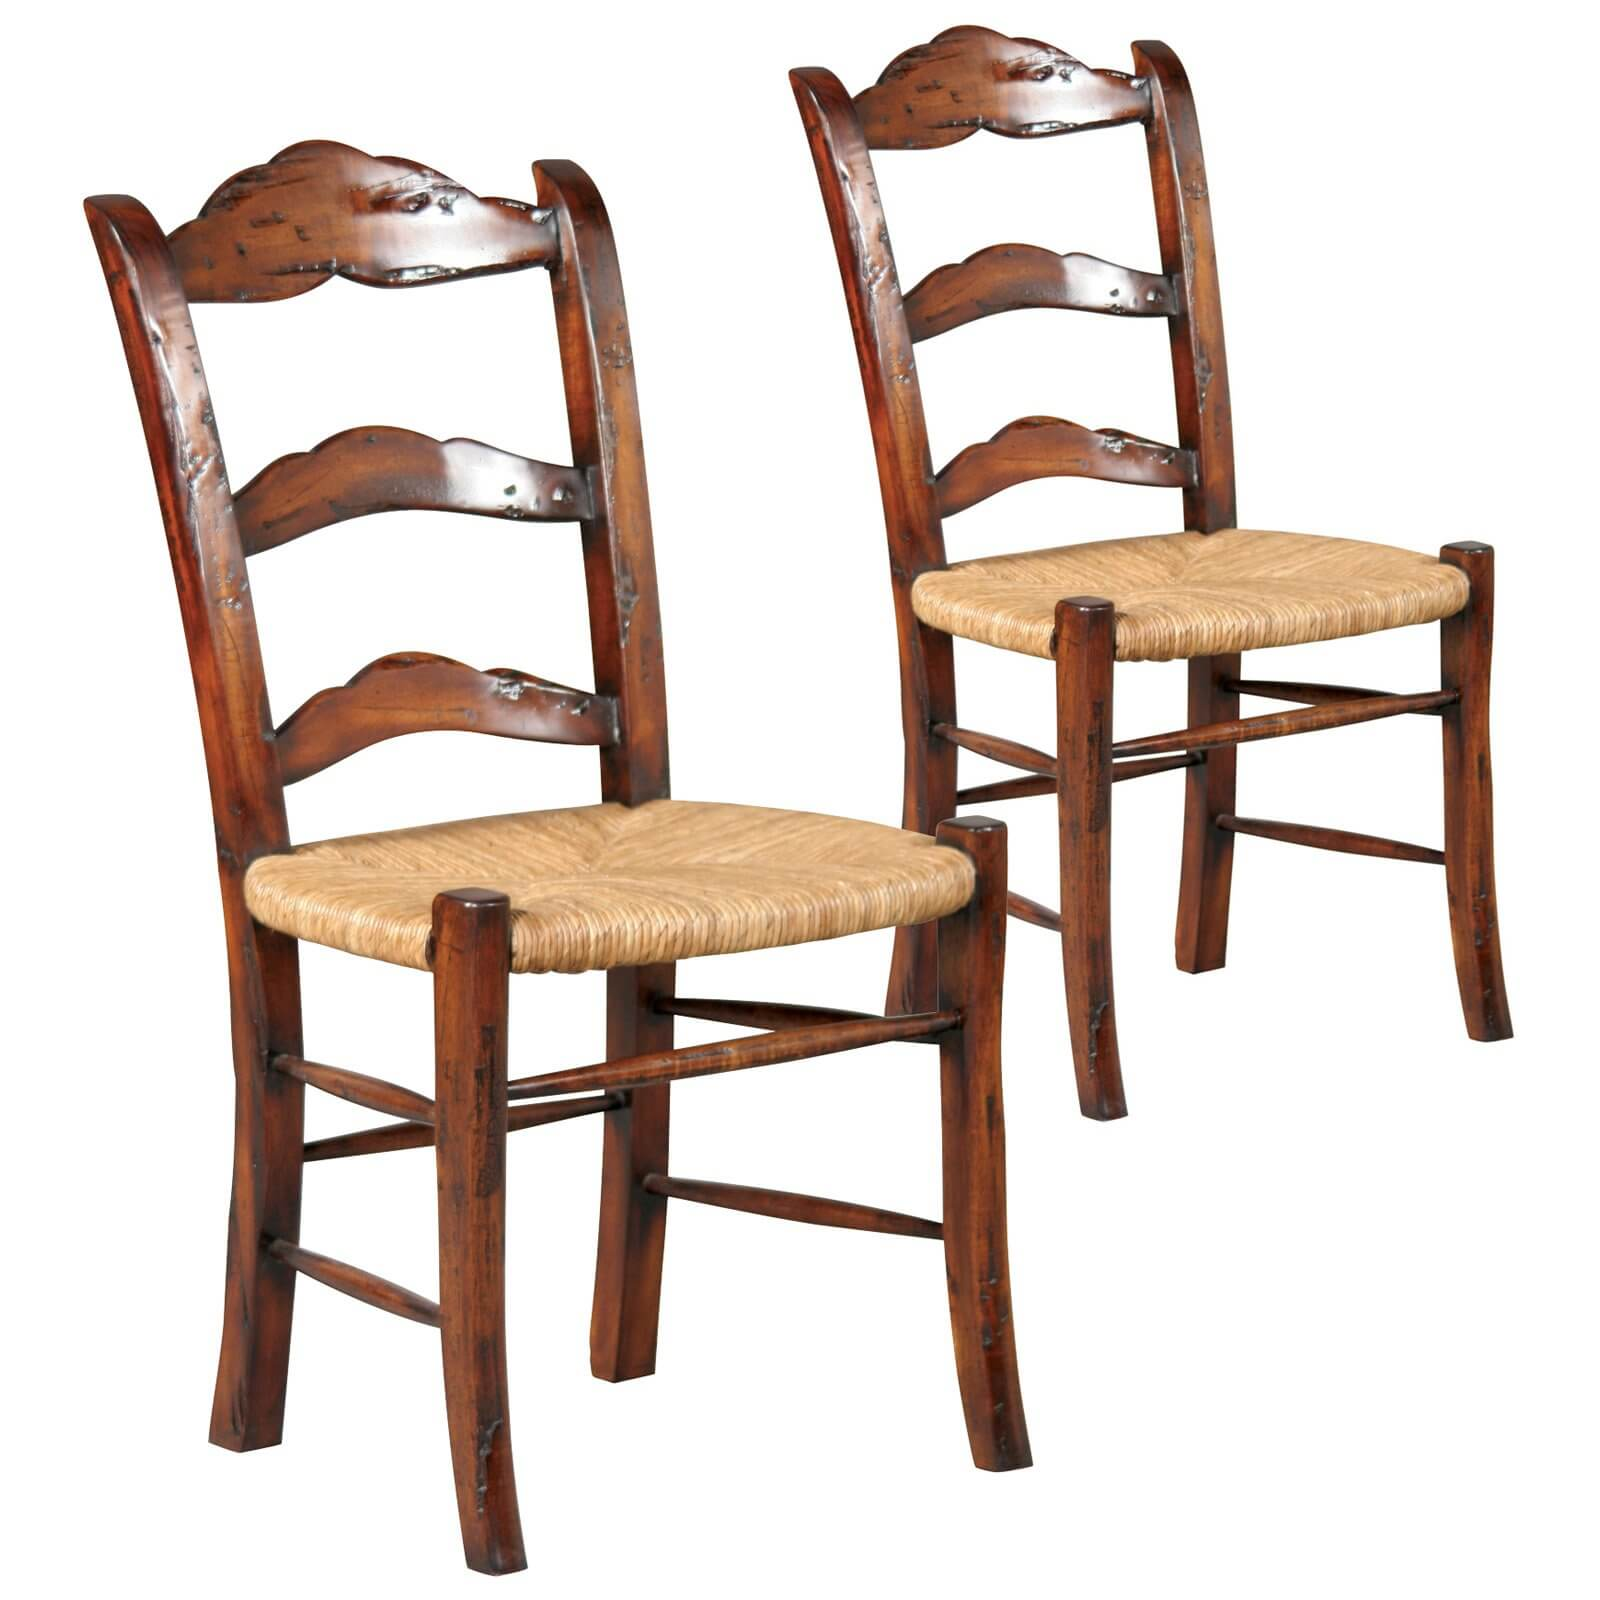 dining chair styles chart folding beach chairs costco 19 types of room crucial buying guide